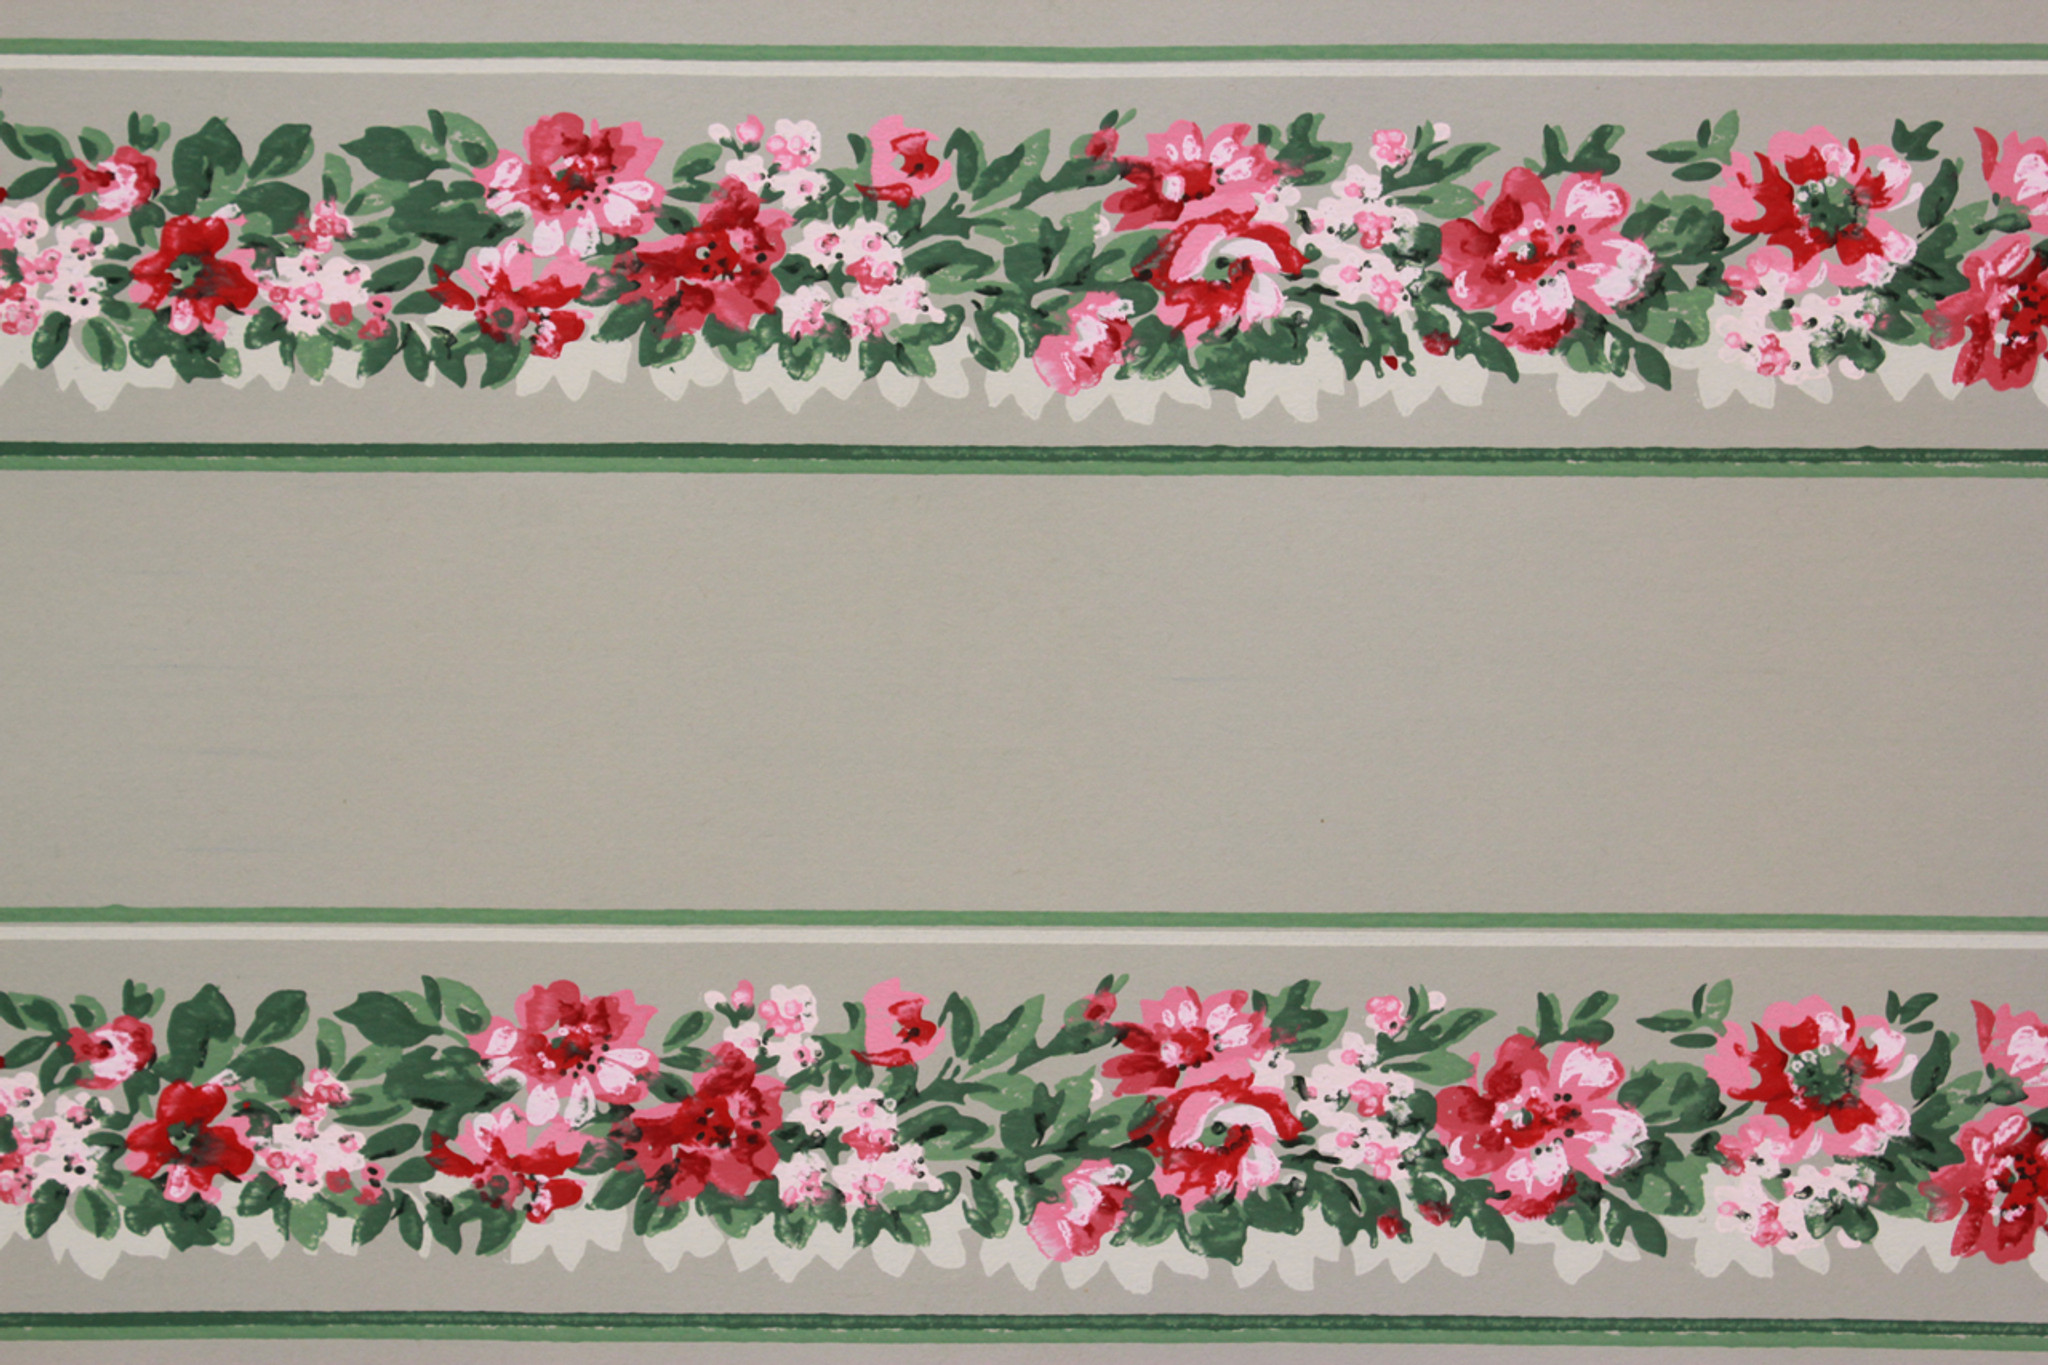 1940s Vintage Wallpaper Border Pink Flowers On Green Rosies